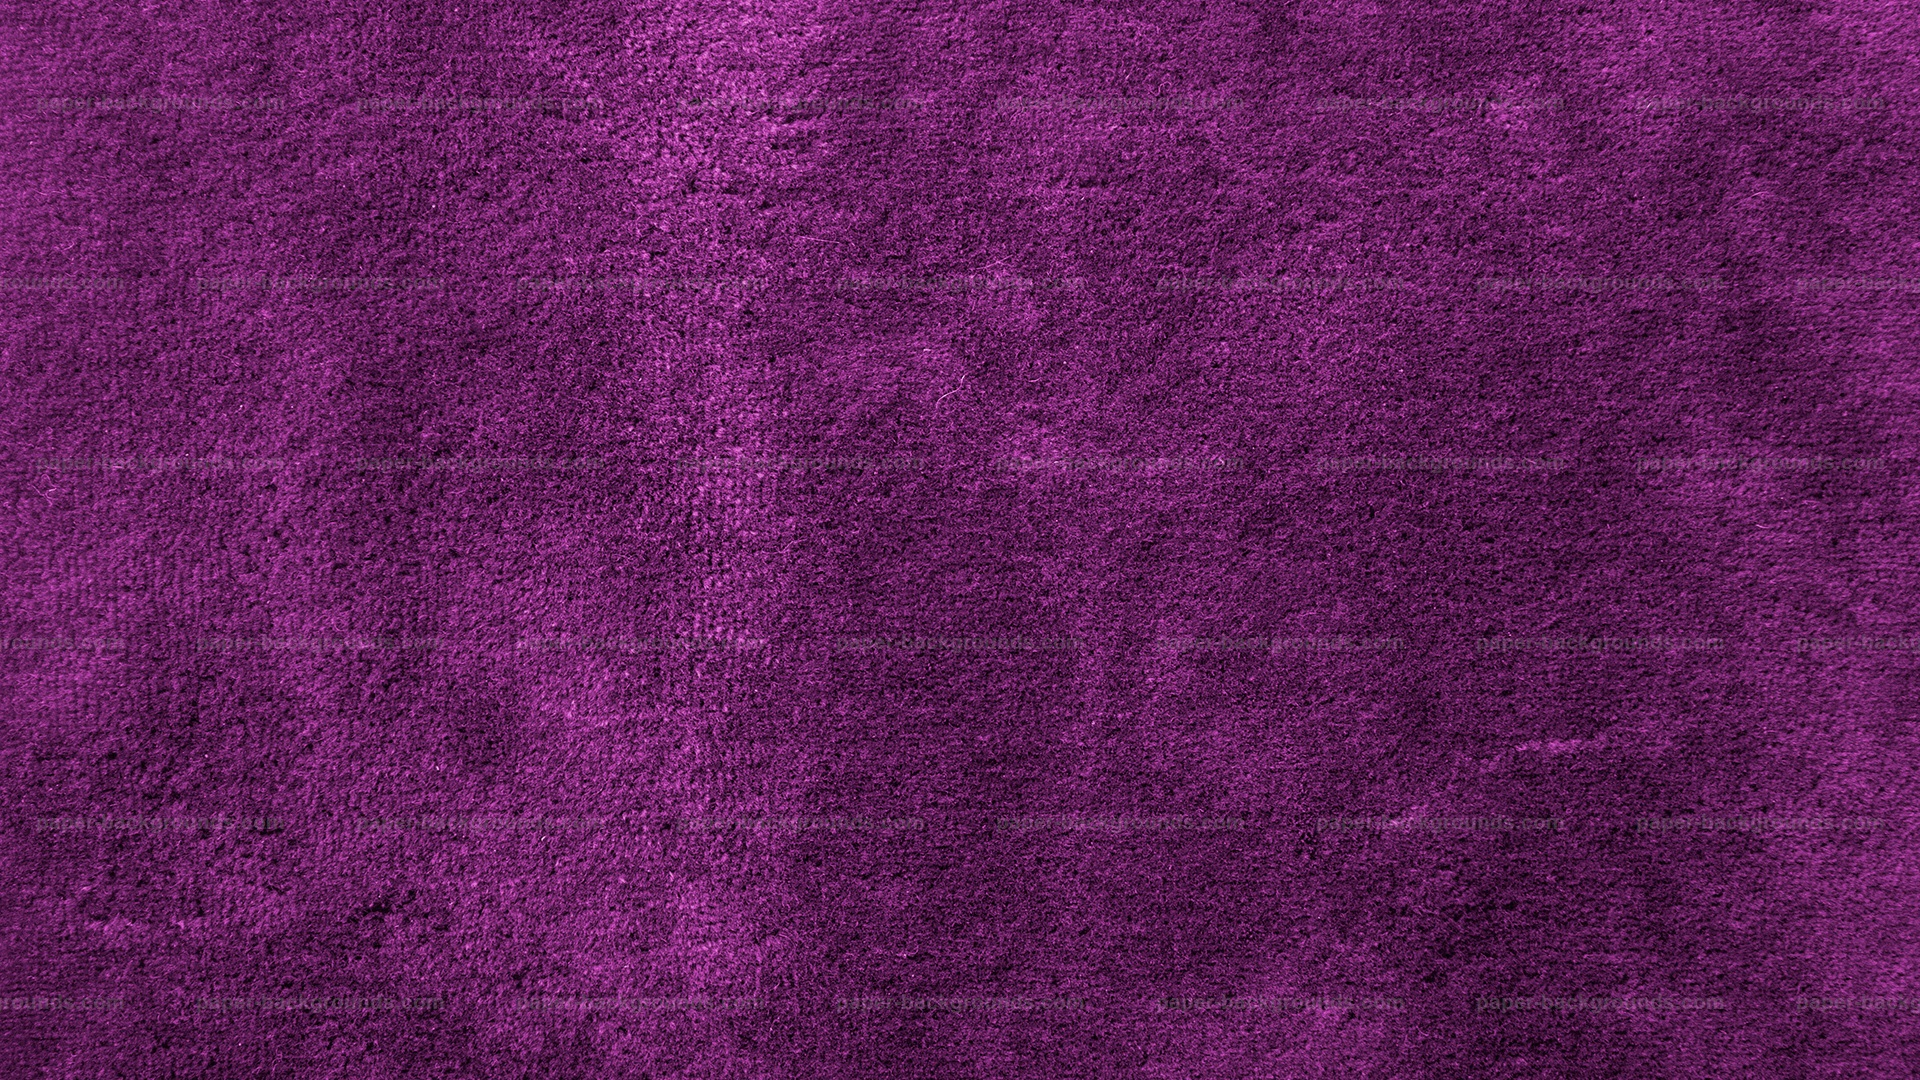 Purple Velvet Texture Background HD